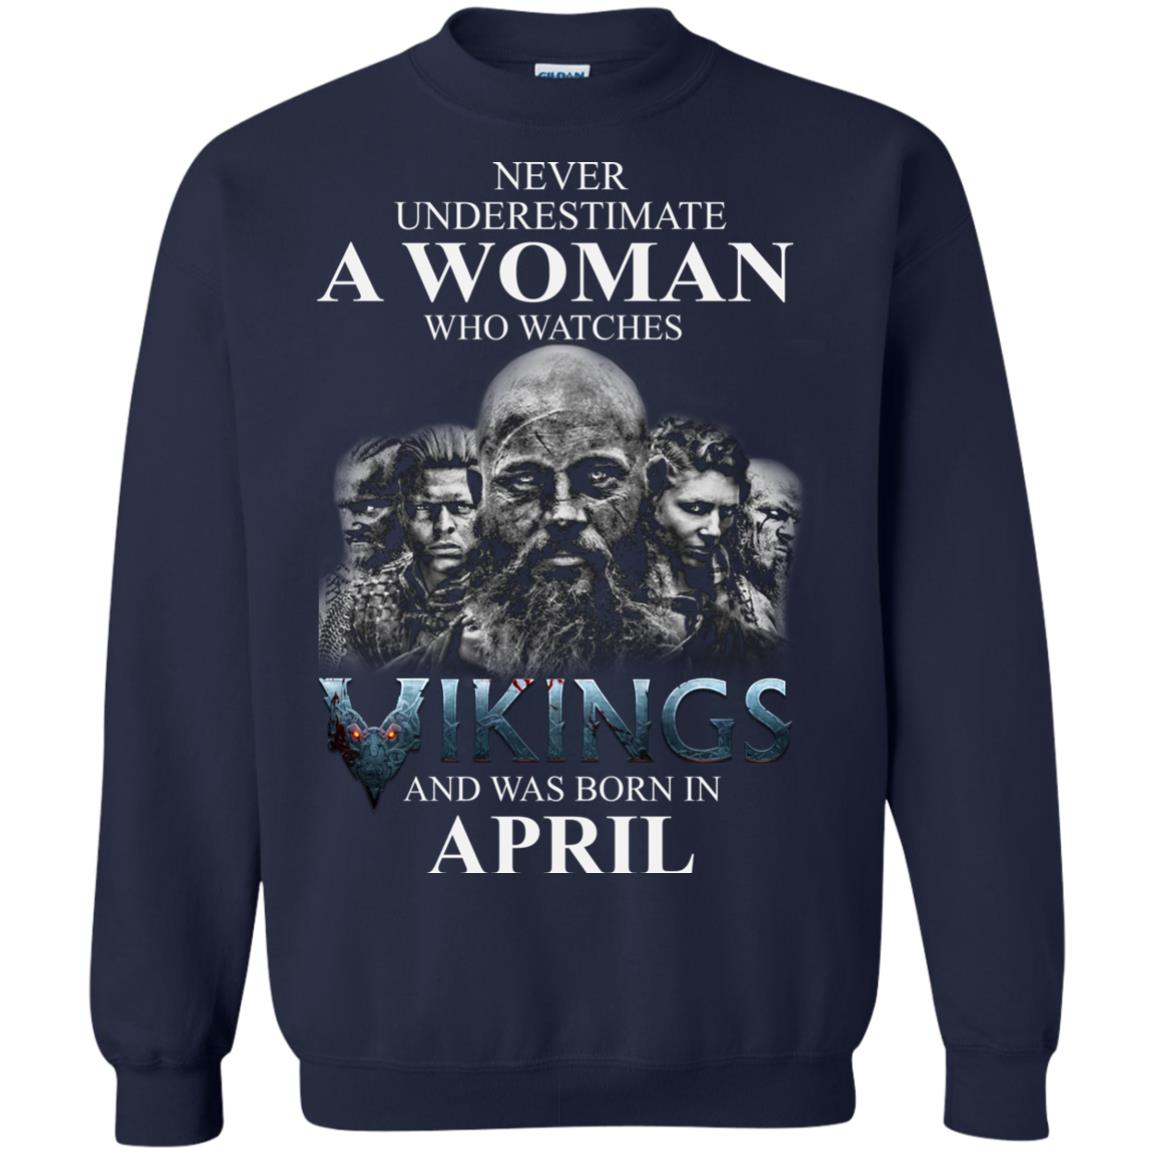 image 1322 - Never Underestimate A woman who watches Vikings and was born in April shirt